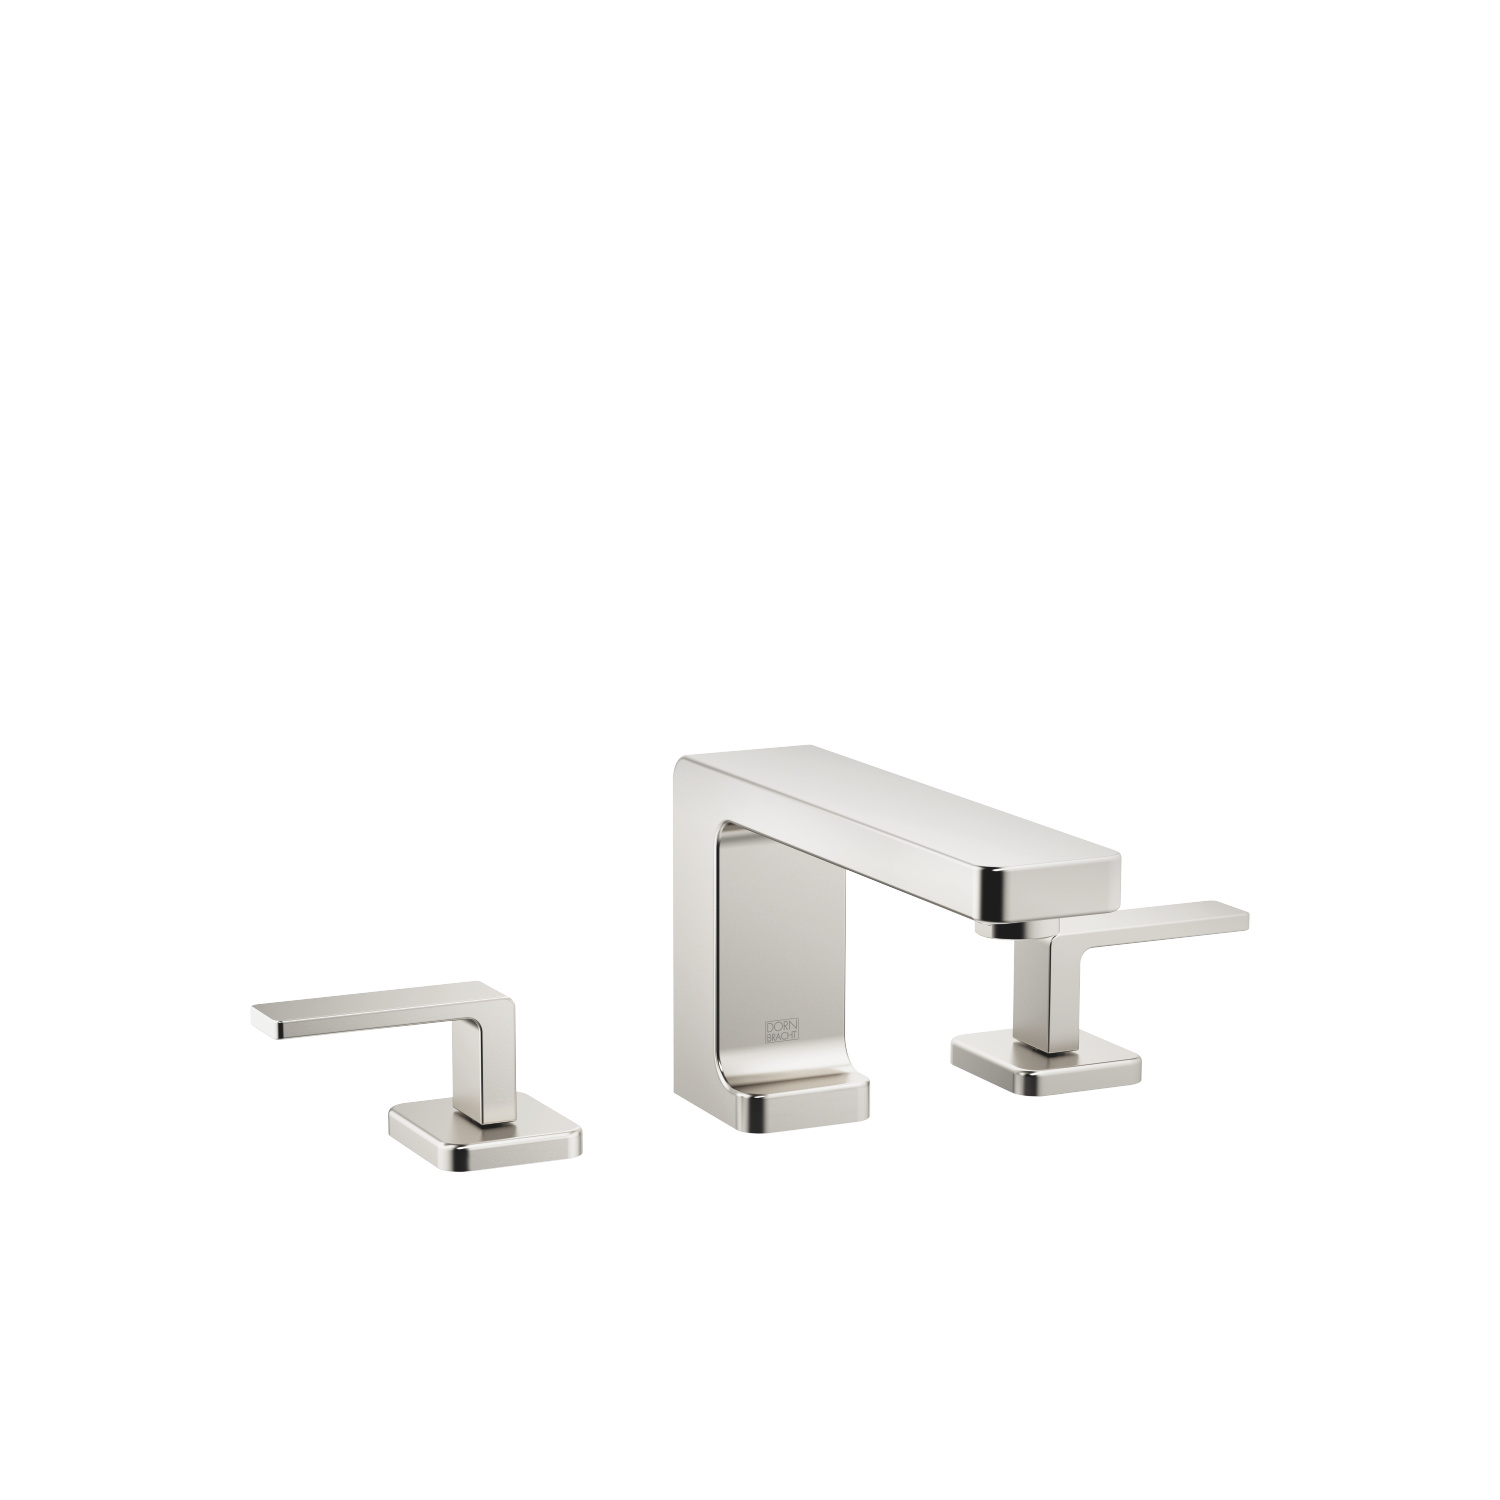 Three-hole basin mixer with pop-up waste - platinum matt - 20 713 710-06